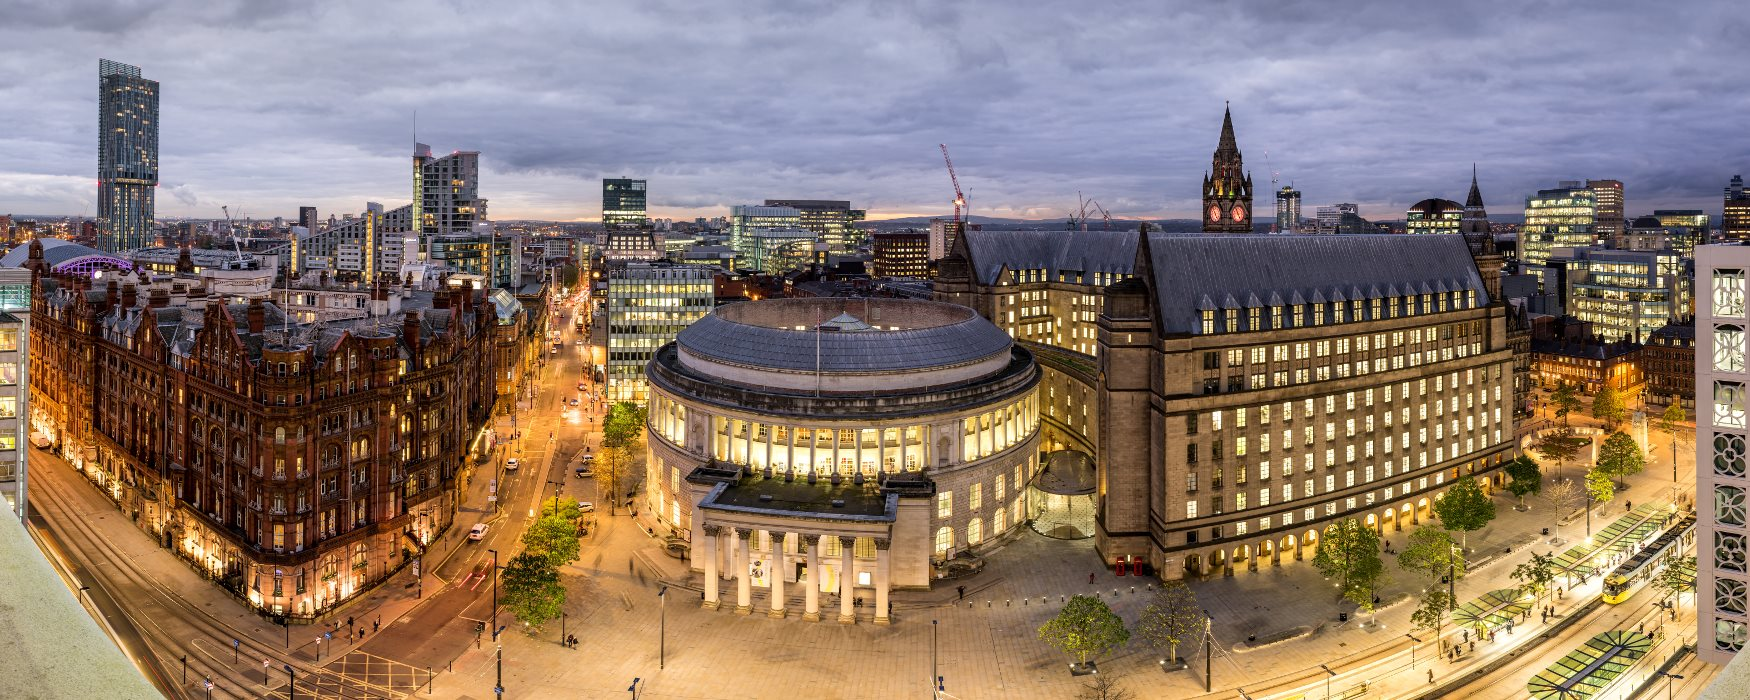 25 Best Things To Do In Manchester (England) - The Crazy ...